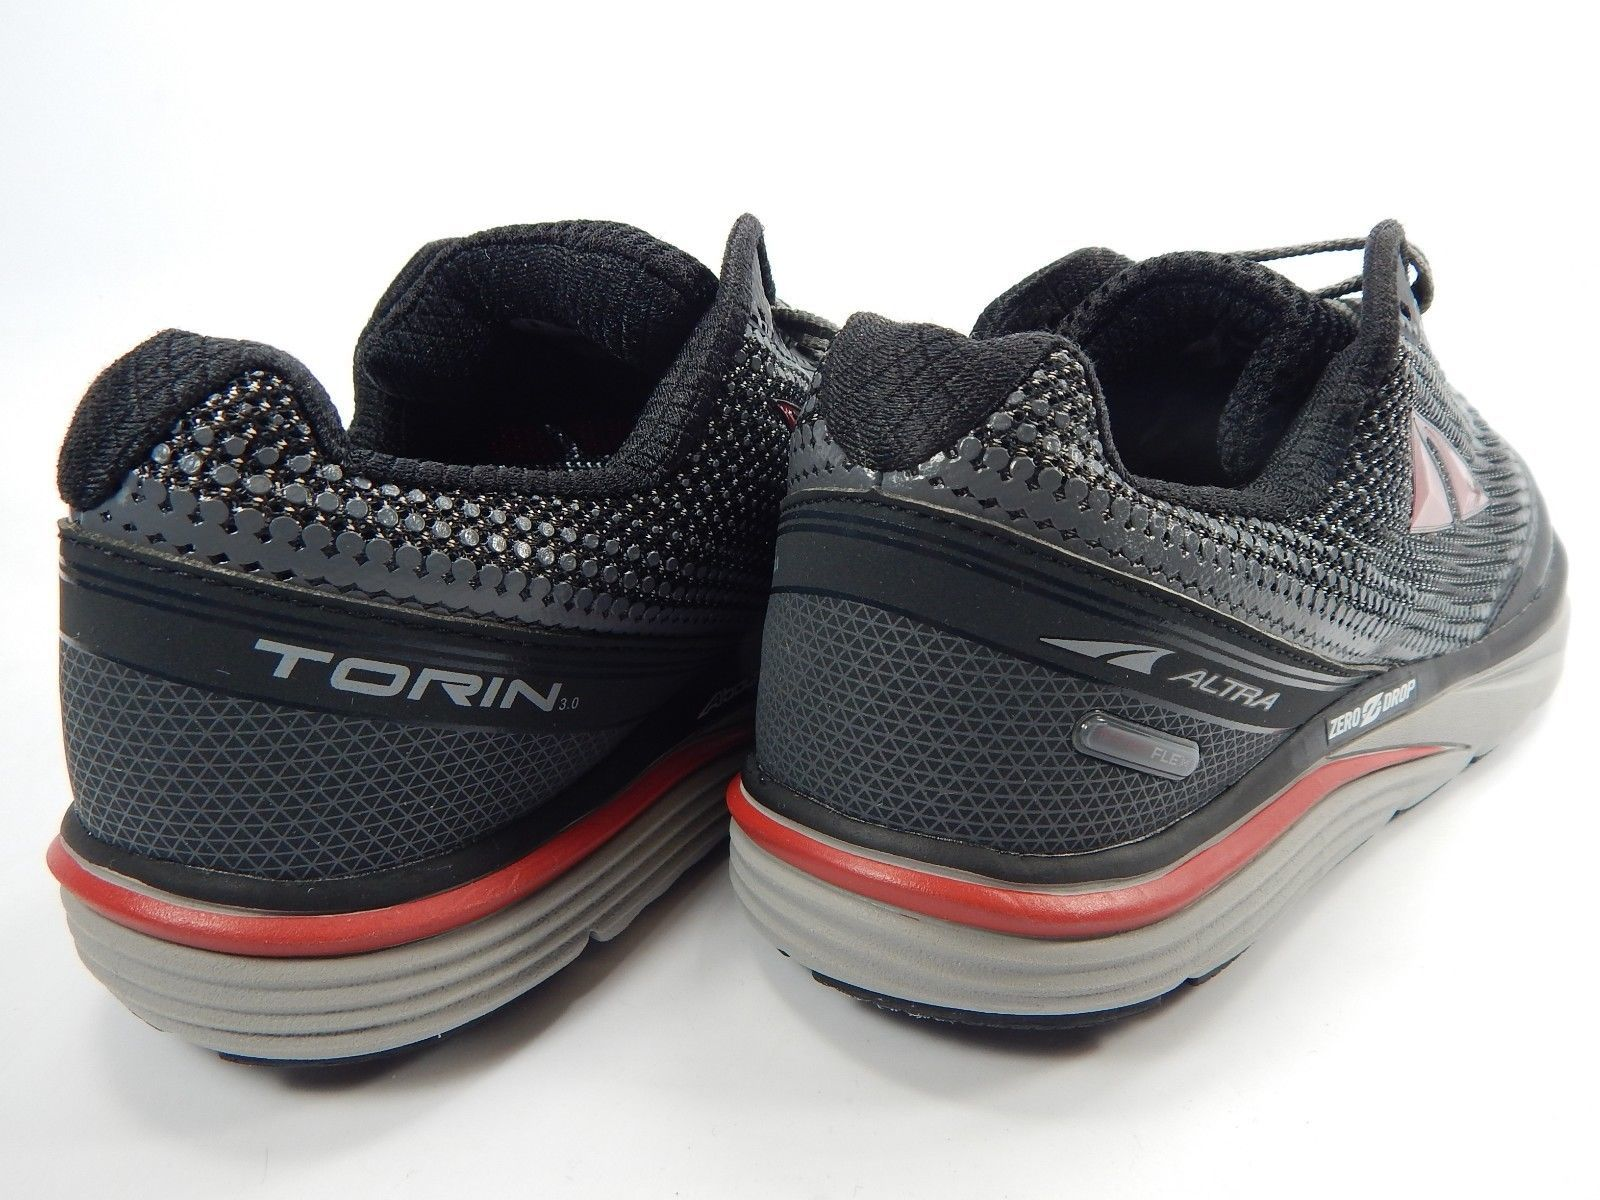 MISMATCH Altra Torin 3.0 Size 9 M (D) Left & 9.5 M (D) Right Men's Shoes